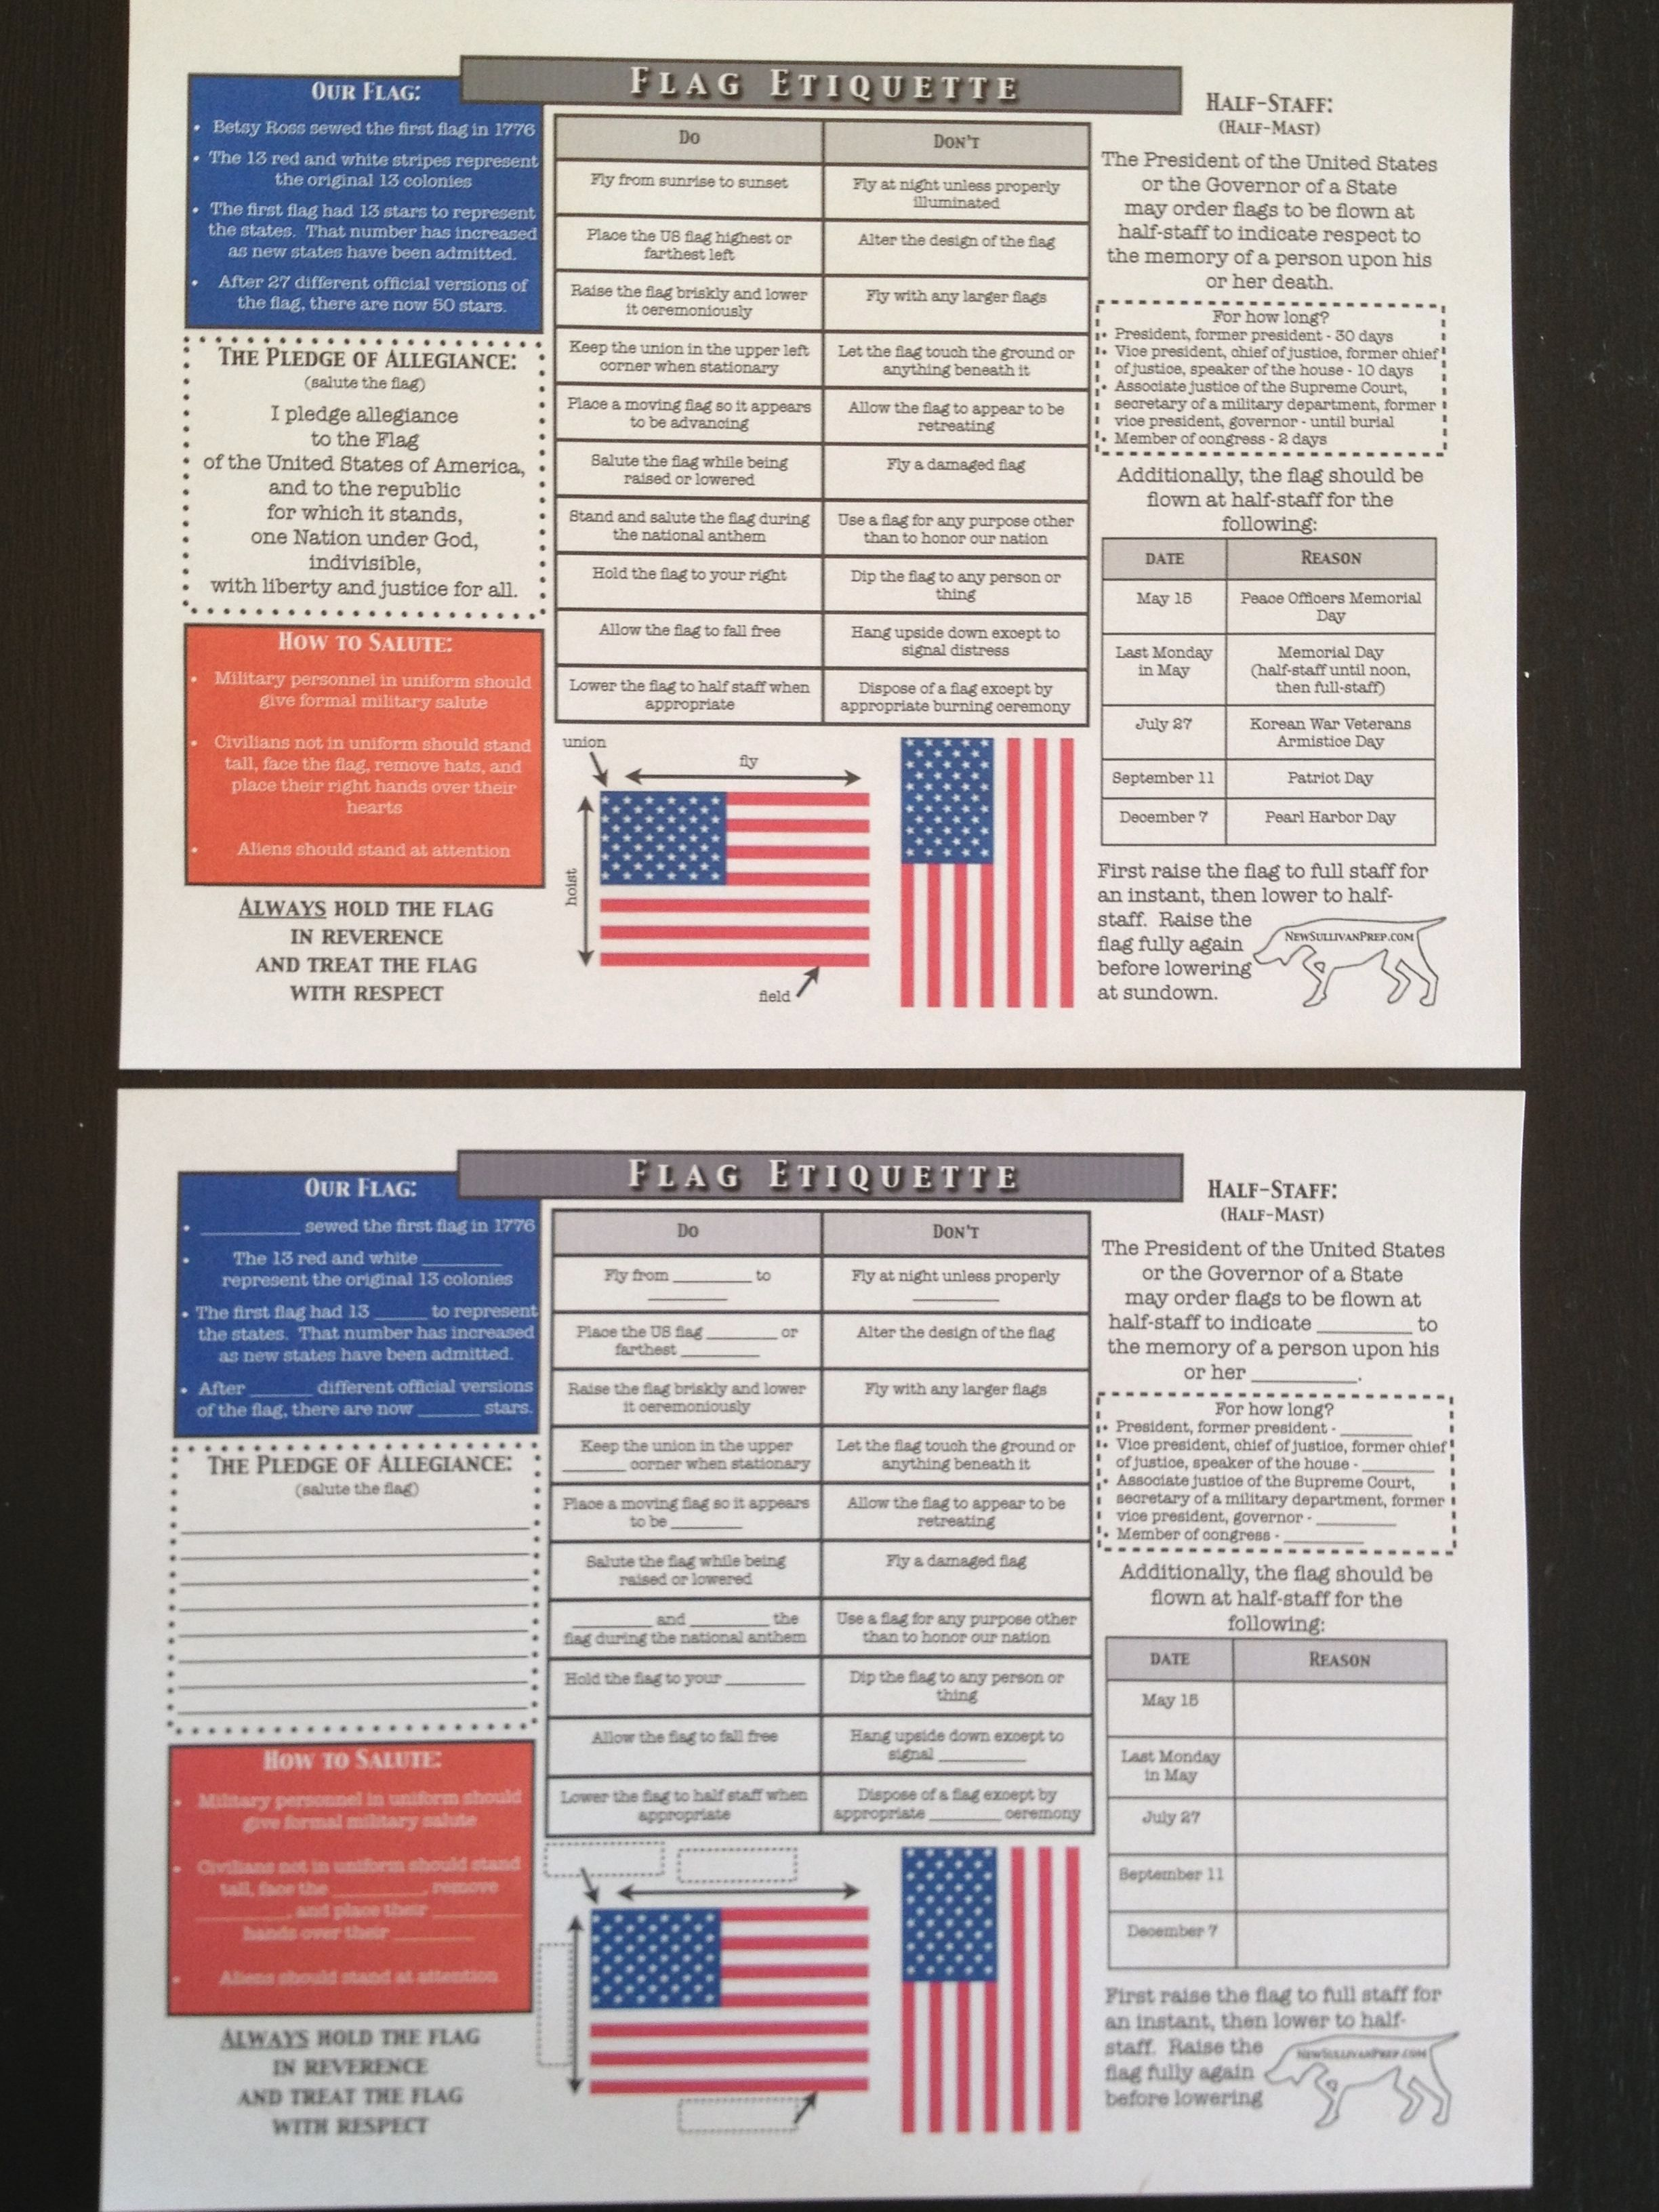 Boy Scout Flag Elegant American Flag Etiquette Worksheets Free From Newsullivanprep Image Of Boy Scout Boy Scouts Merit Badges Flag Etiquette Scout Activities